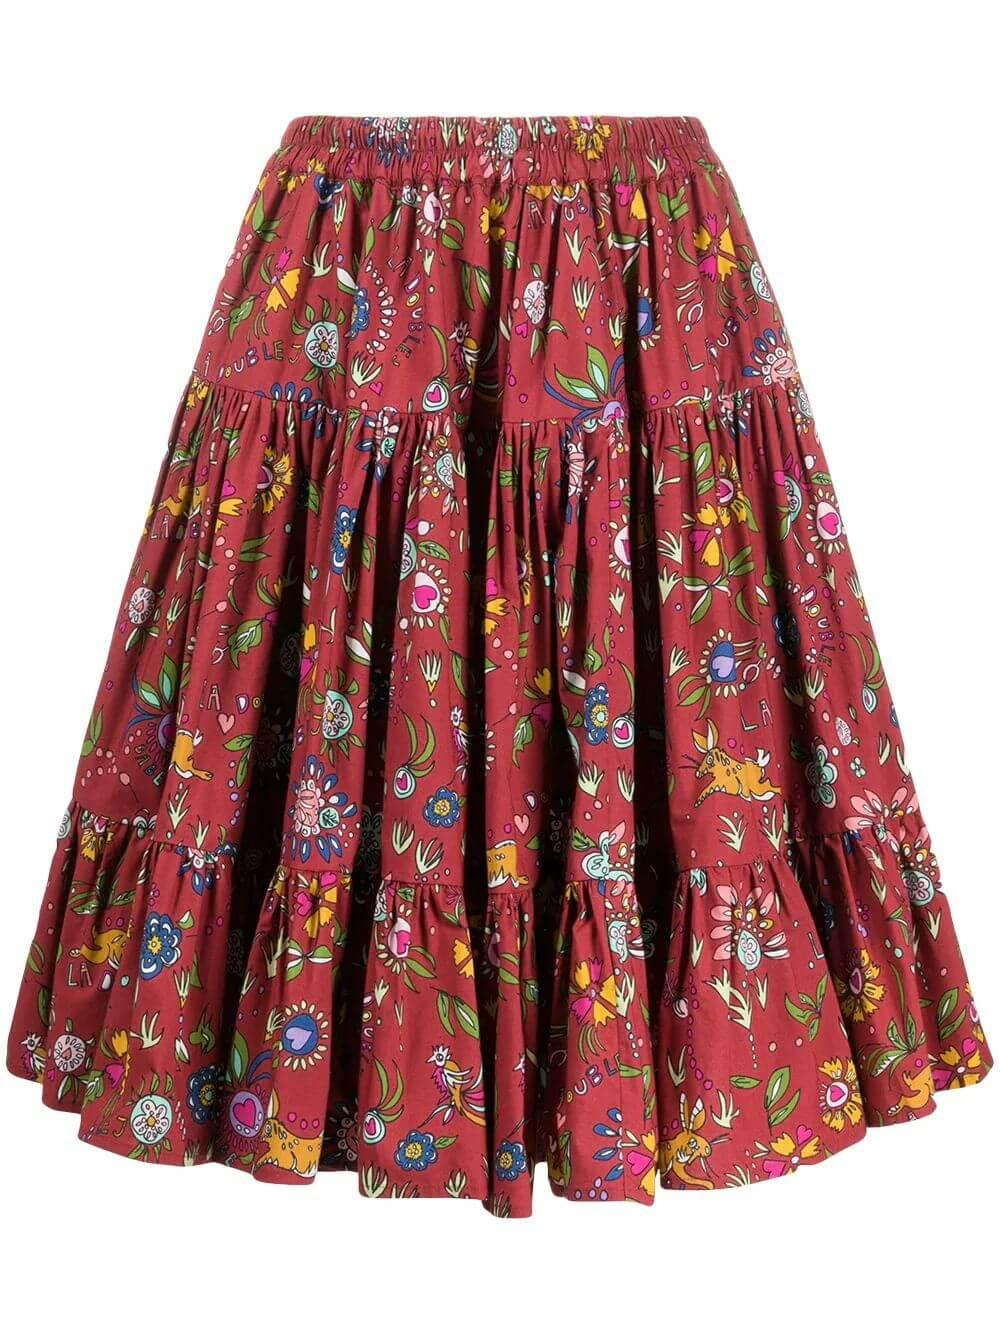 Mini Pleated Love Skirt